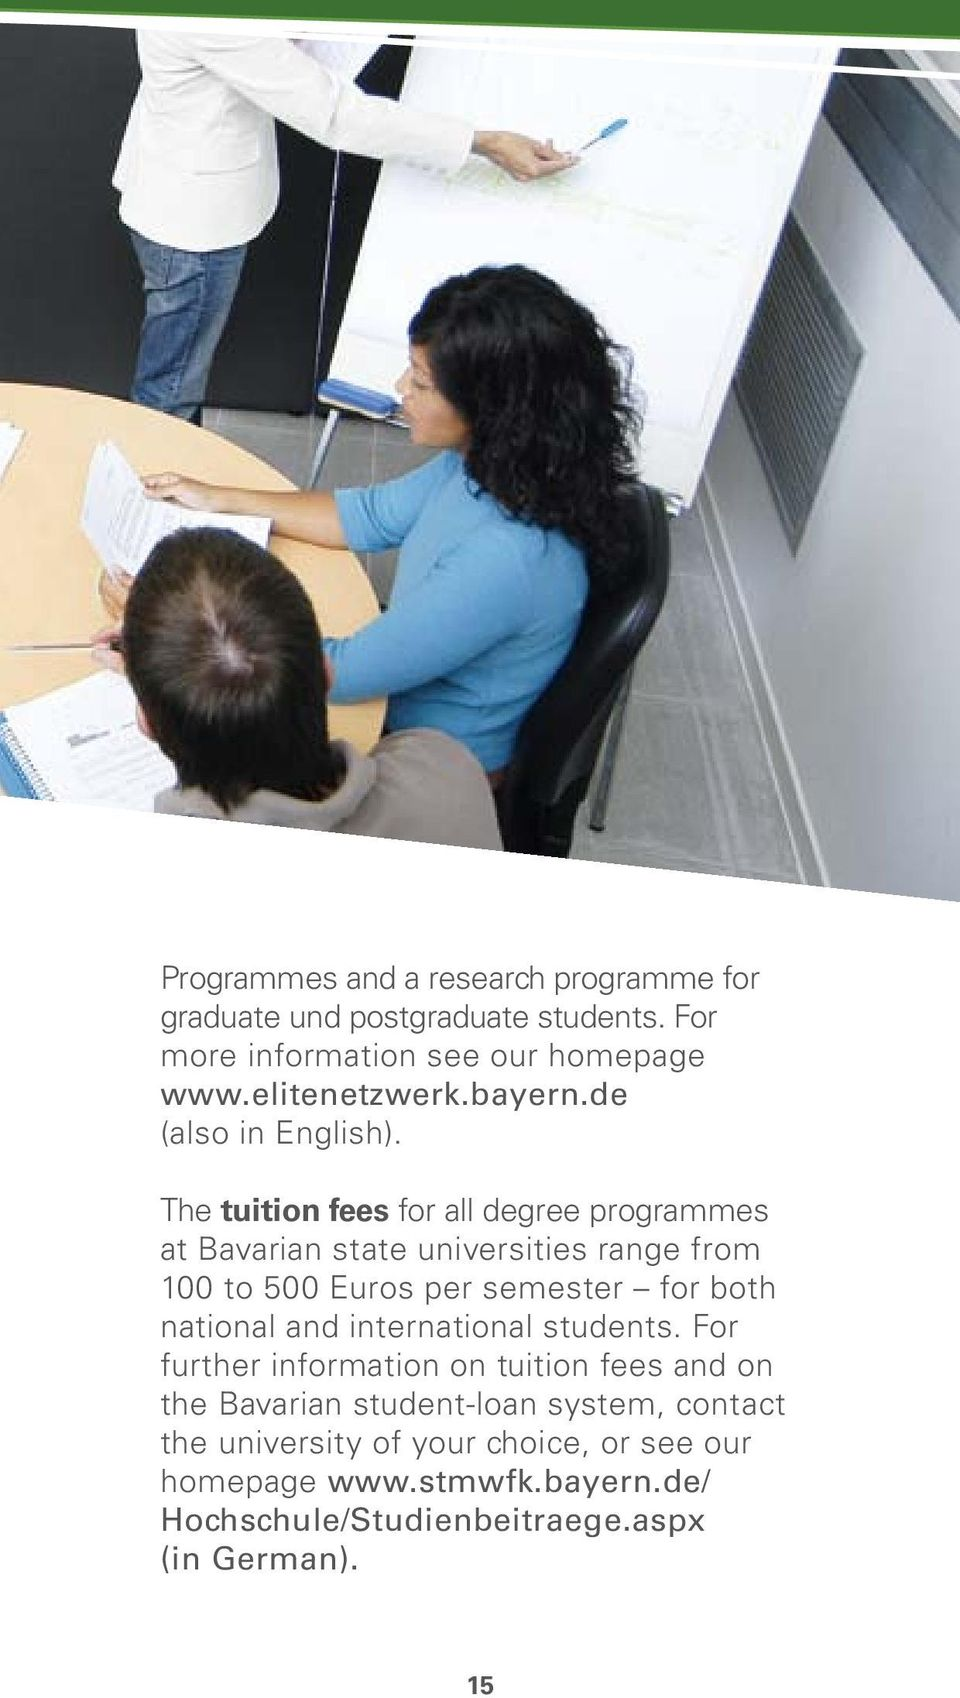 The tuition fees for all degree programmes at Bavarian state universities range from 100 to 500 Euros per semester for both national